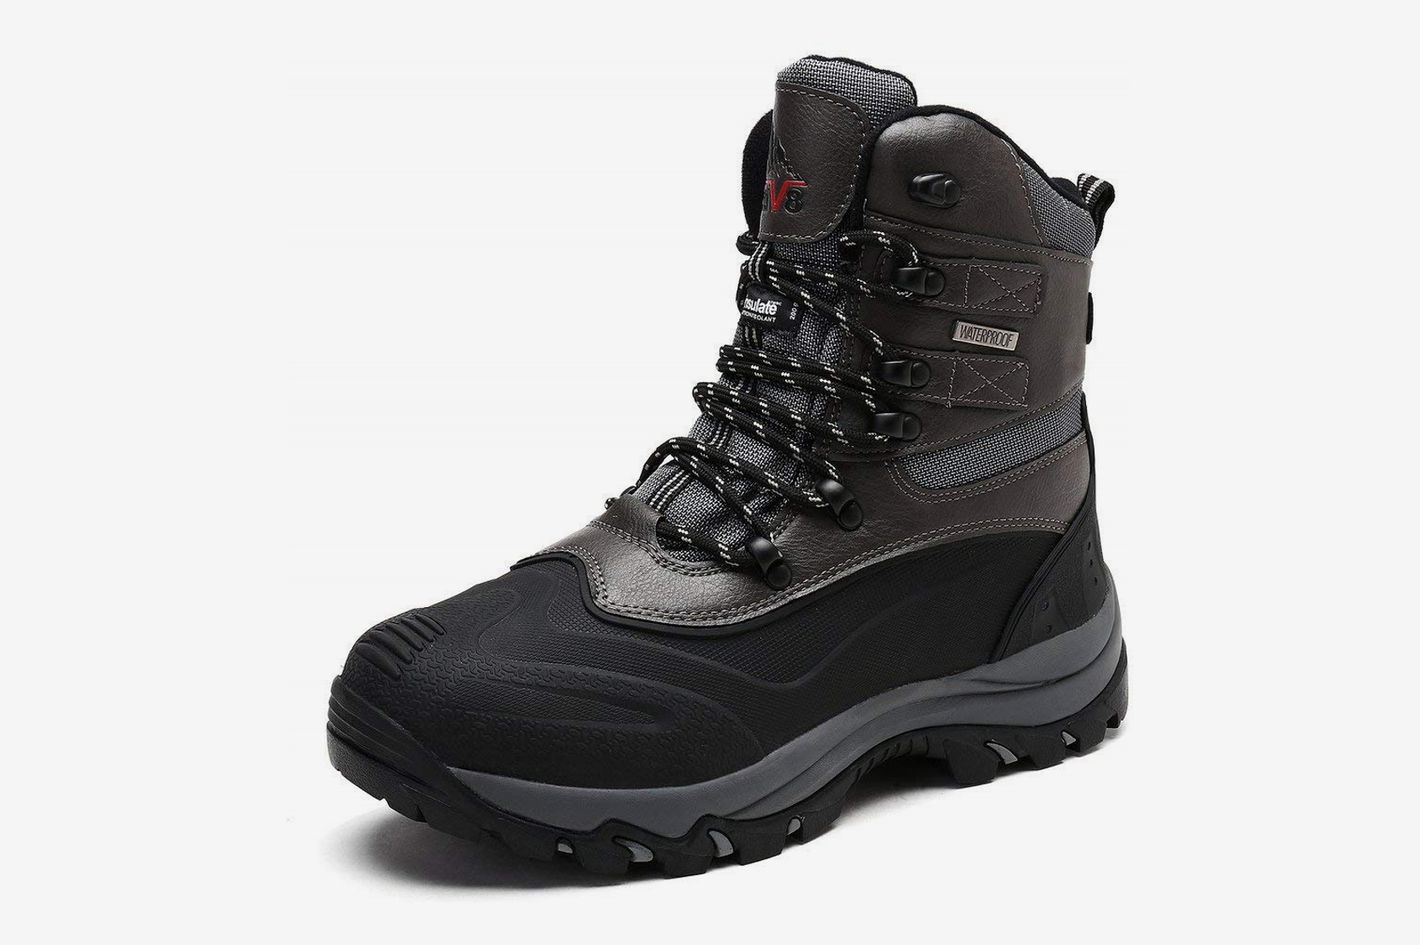 a372211b3dd Arctiv8 Men s Insulated Waterproof Construction Rubber Sole Winter Snow  Boots